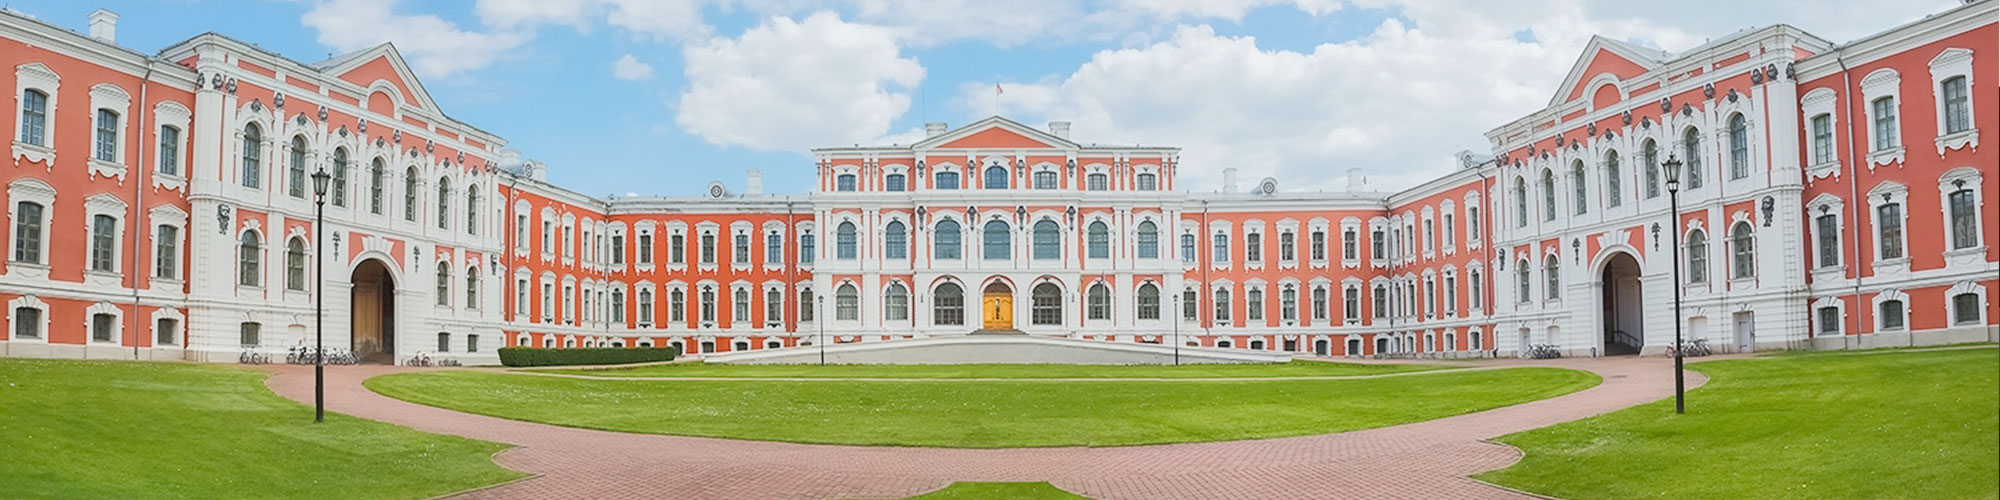 Latvia University of Agriculture in Jelgava